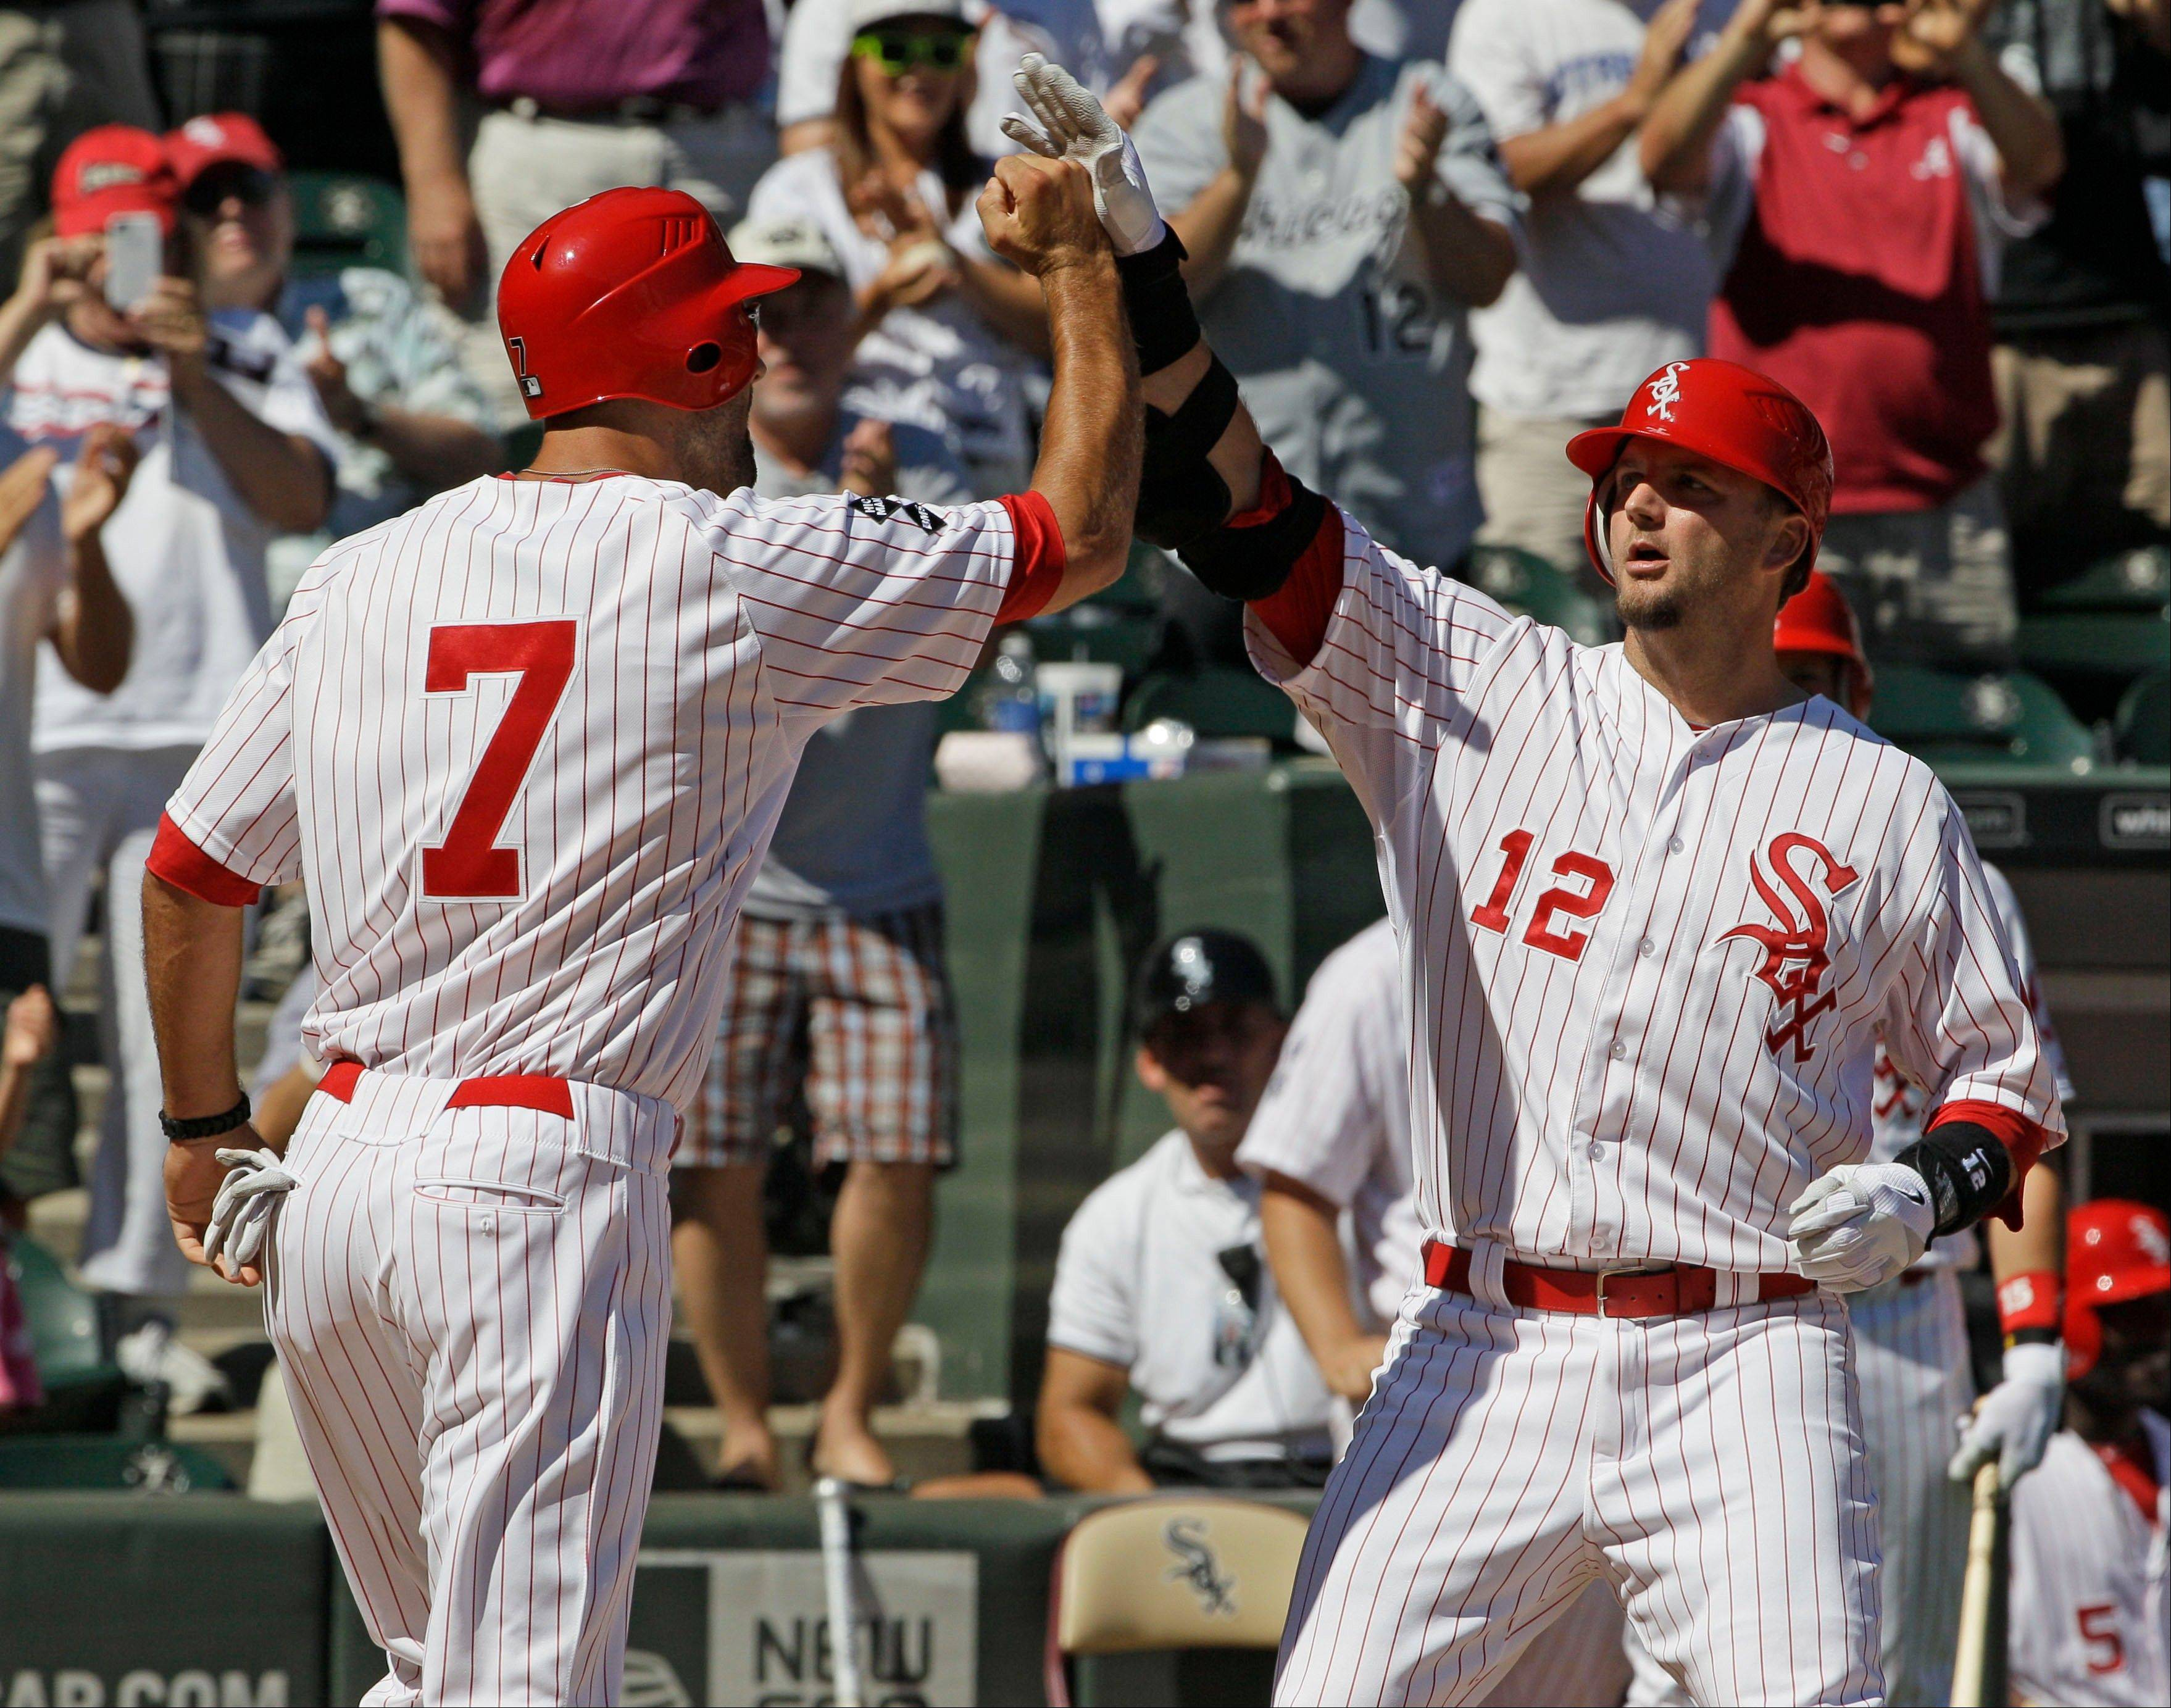 A.J. Pierzynski, right, celebrates with Jordan Danks after hitting a 2-run home run against the Los Angeles Angels during the seventh inning Sunday at U.S. Cellular Field.